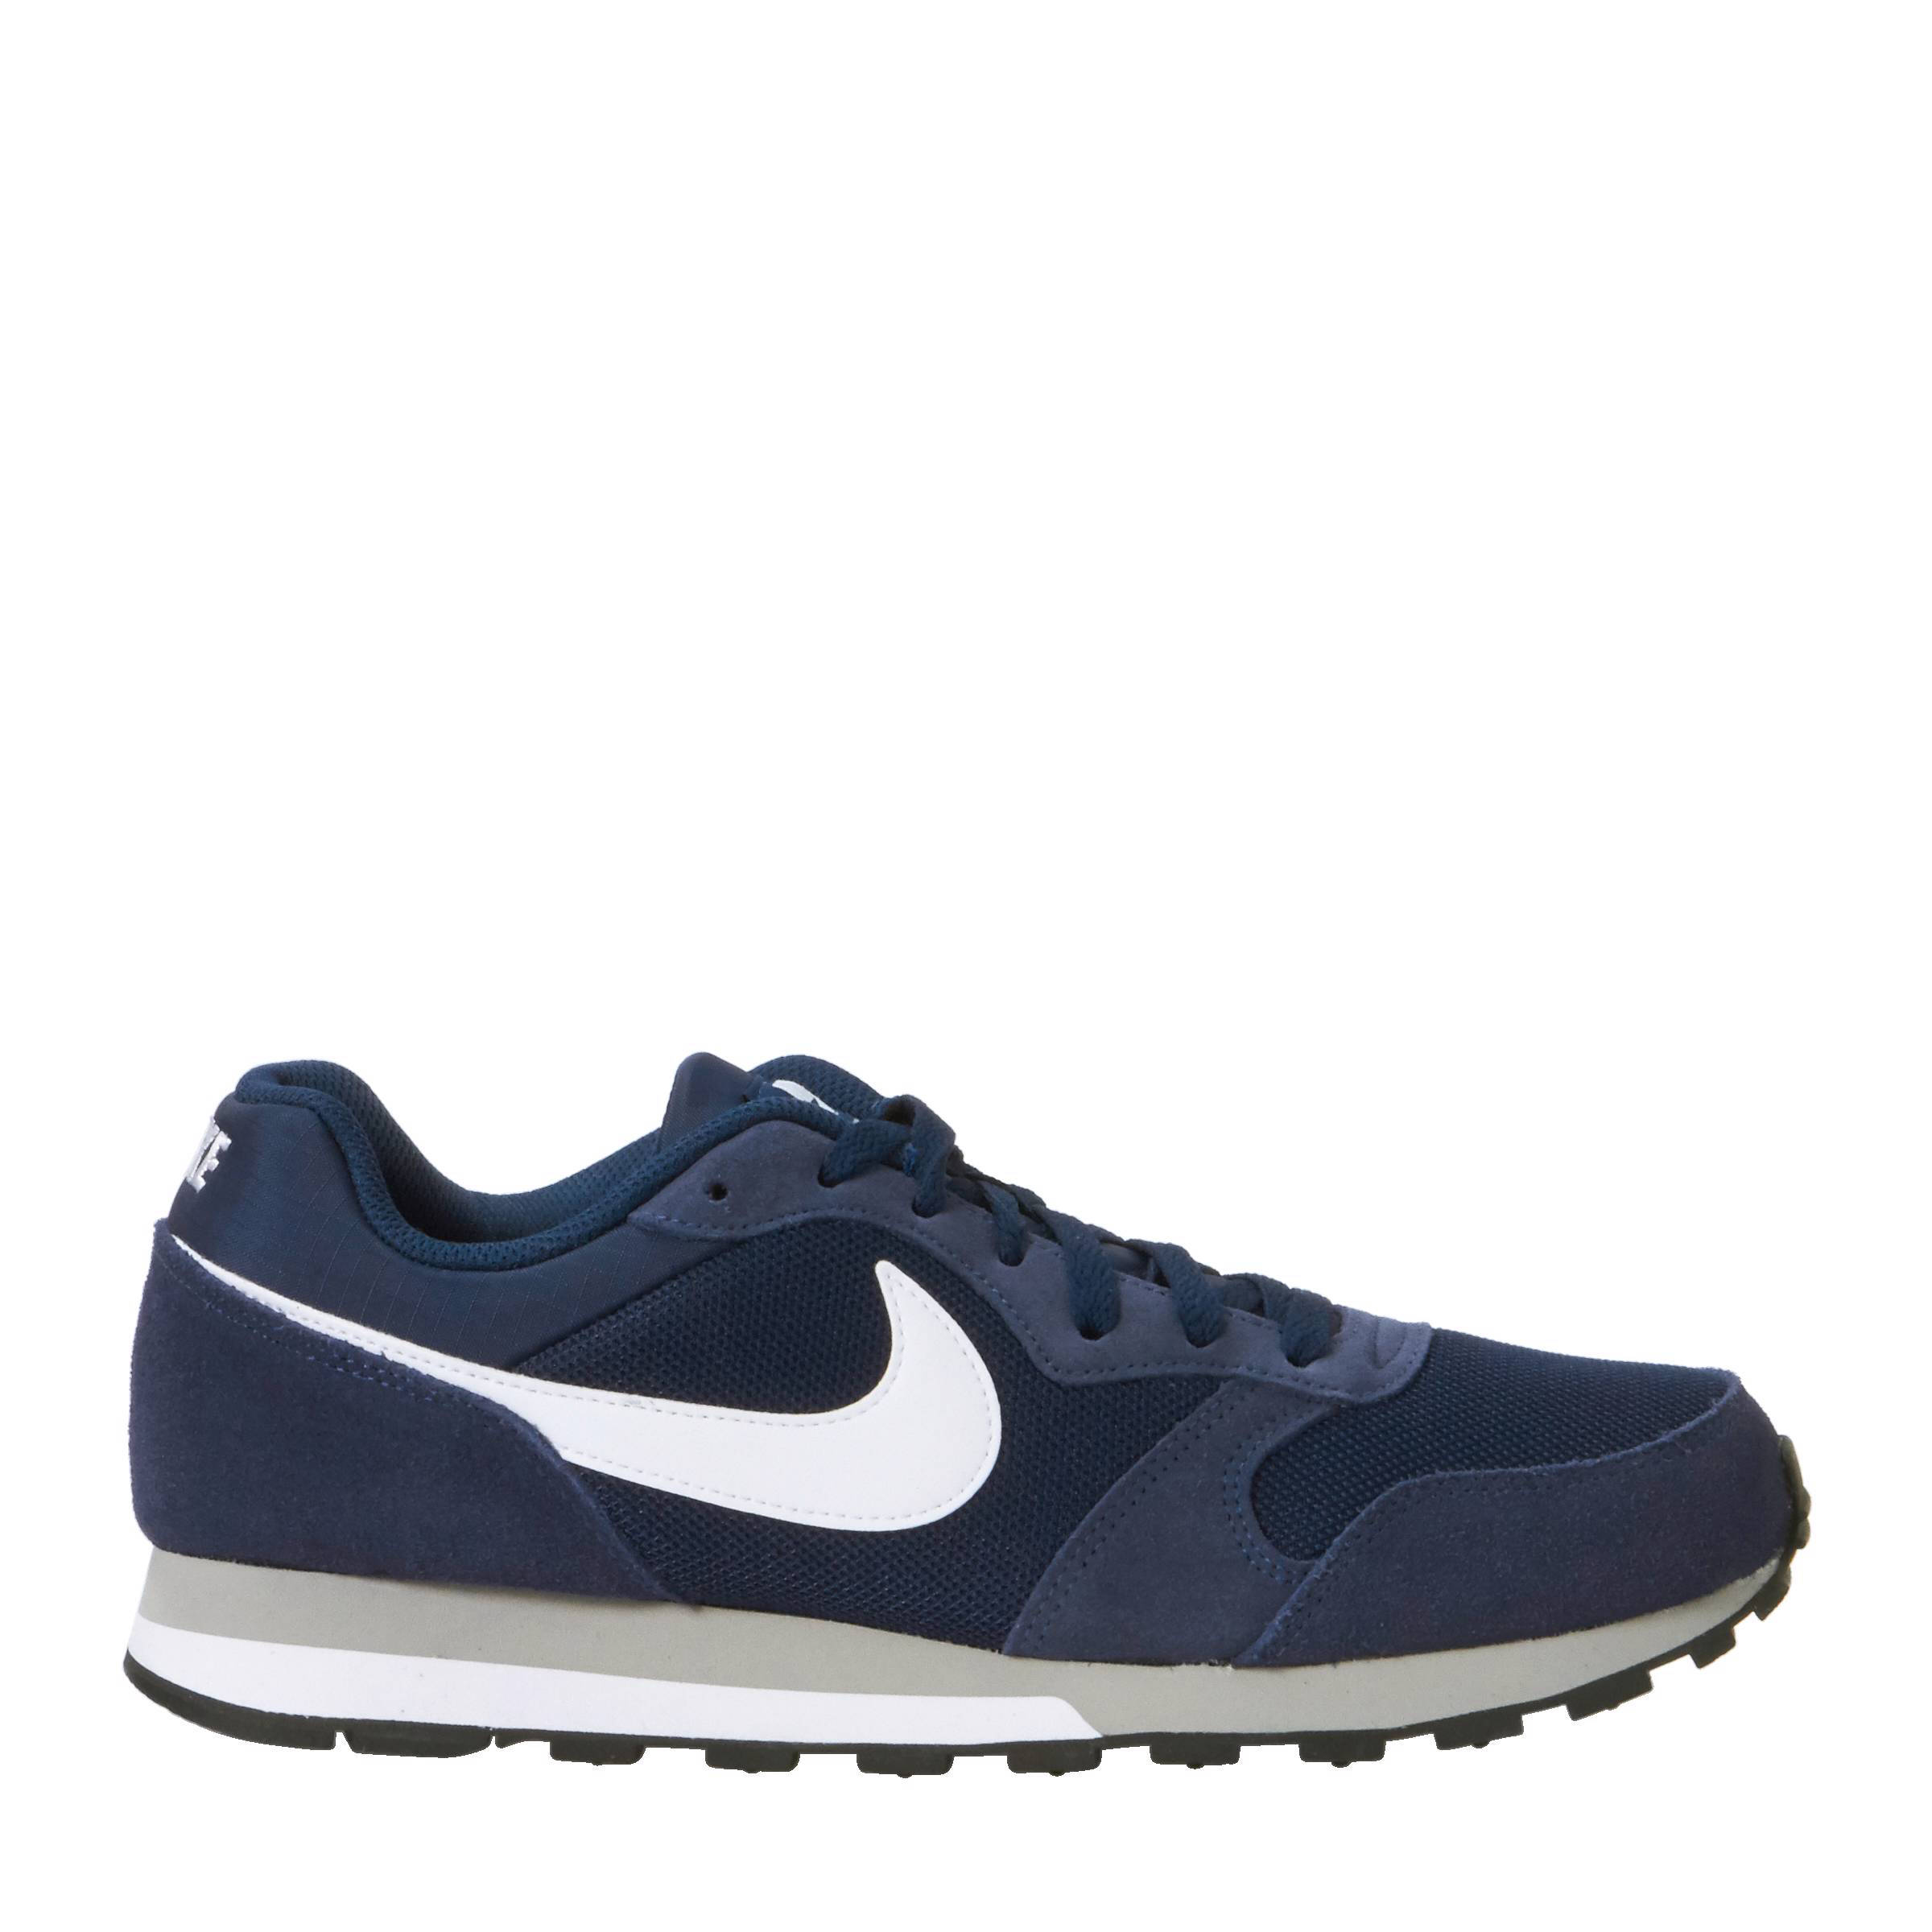 new arrival c8f15 7ddfc Nike MD Runner 2 sneakers  wehkamp